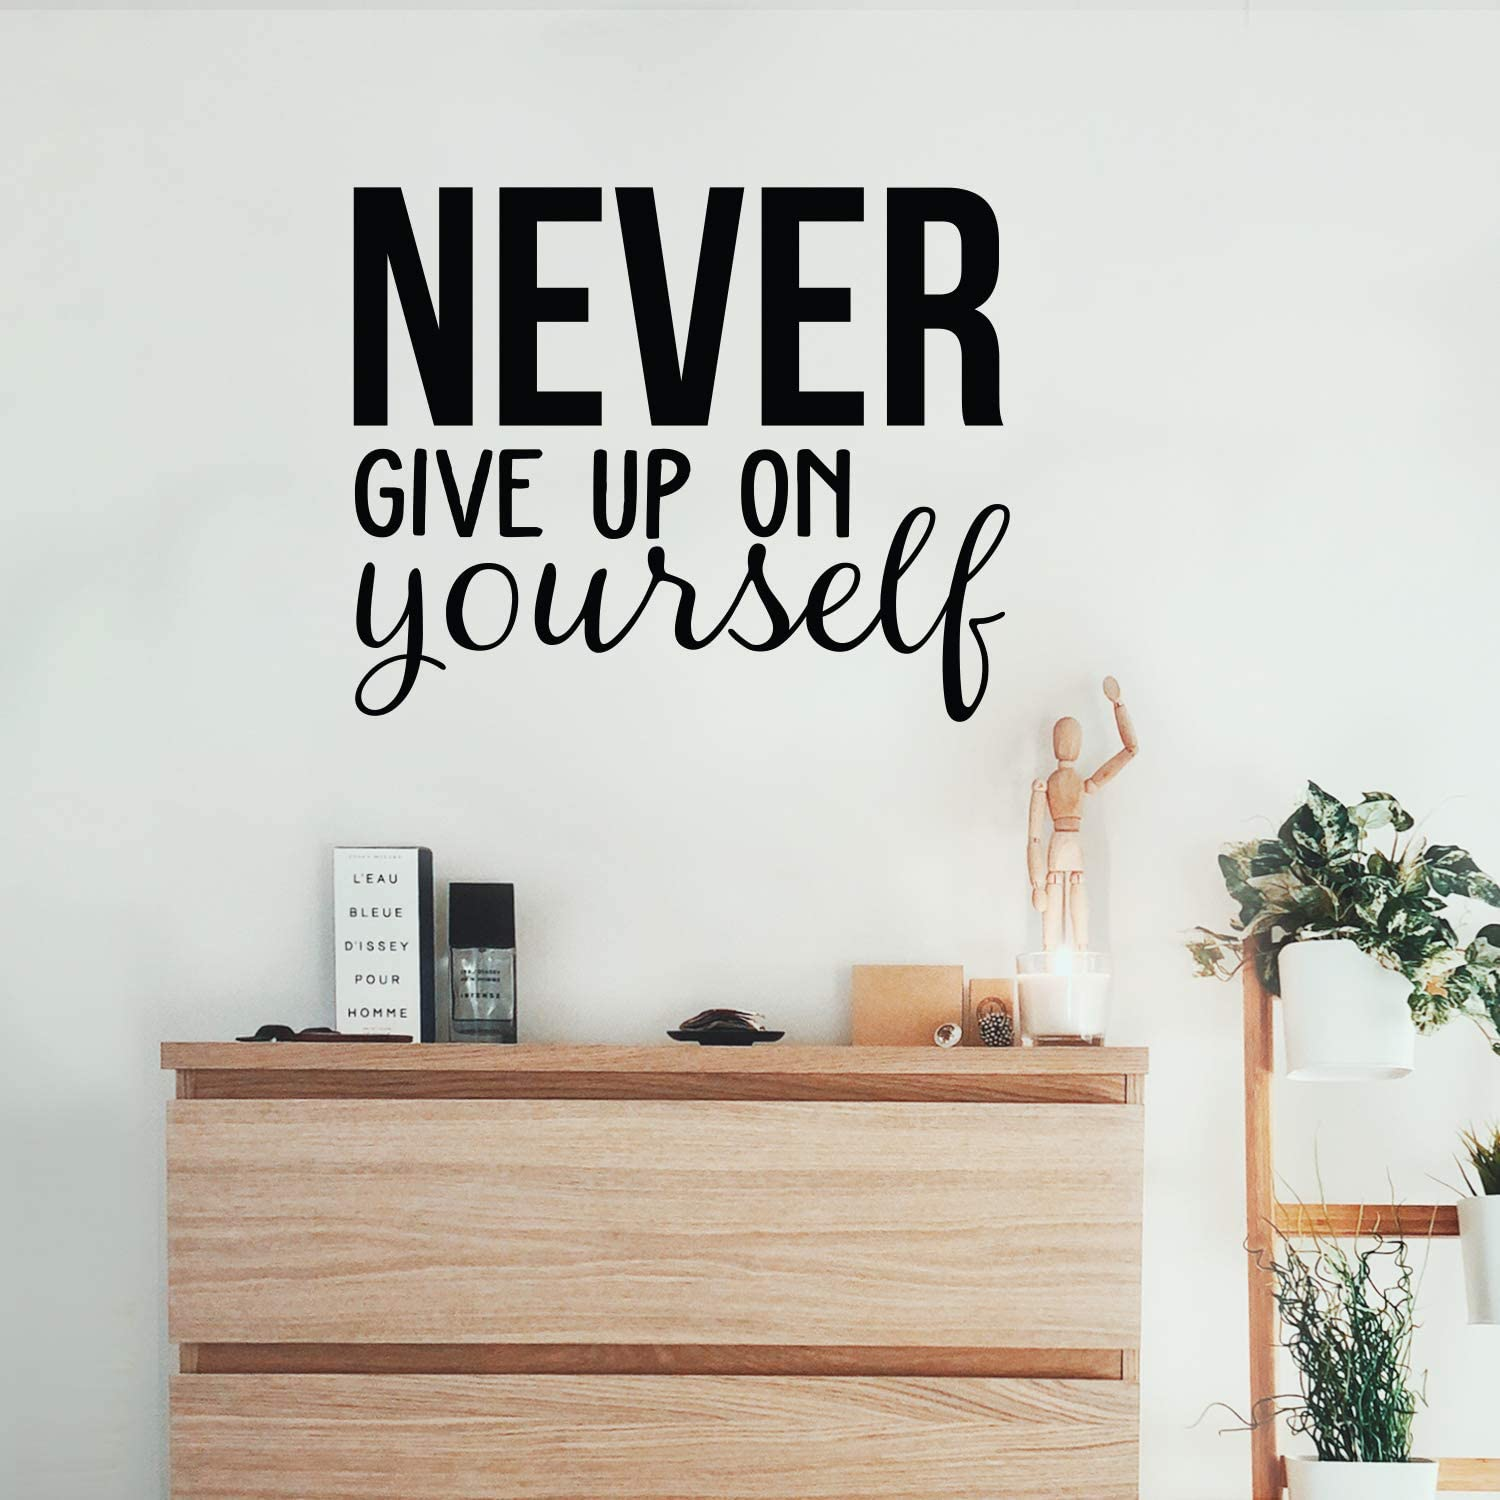 """Vinyl Wall Art Decal - Never Give Up On Yourself - 22"""" x 27"""" - Modern Motivational Self Esteem Quote Sticker for Optimism Teen Bedroom Living Room Home Work Office Classroom Decor (Black)"""